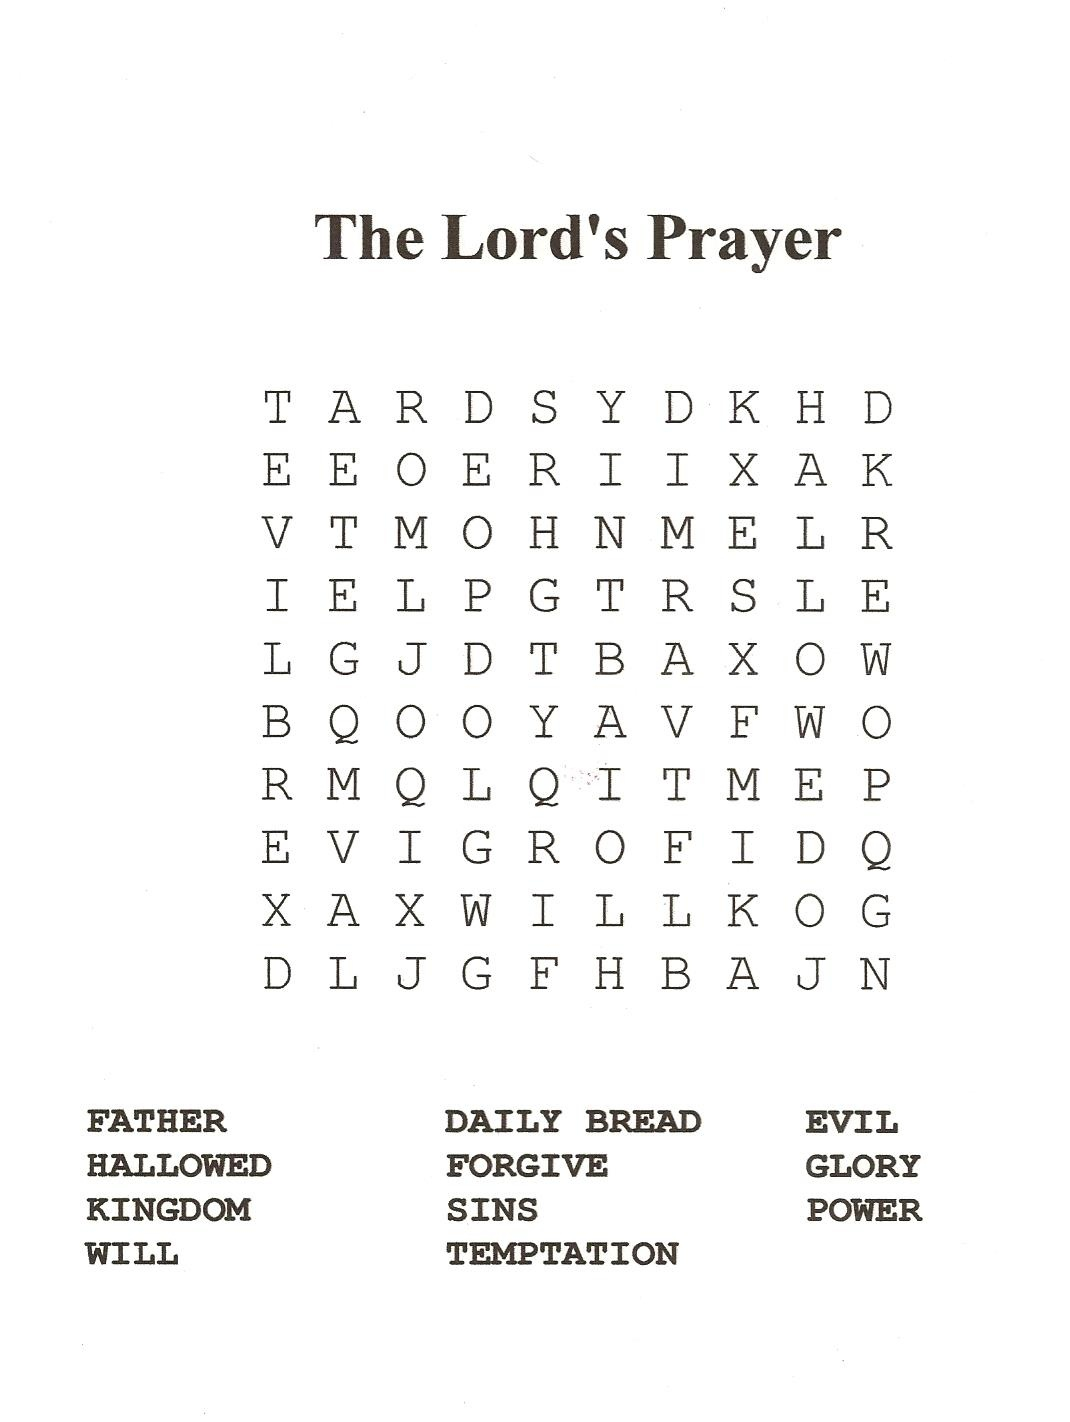 18 Fun Printable Bible Word Search Puzzles   Kittybabylove - Christian Word Search Puzzles Free Printable